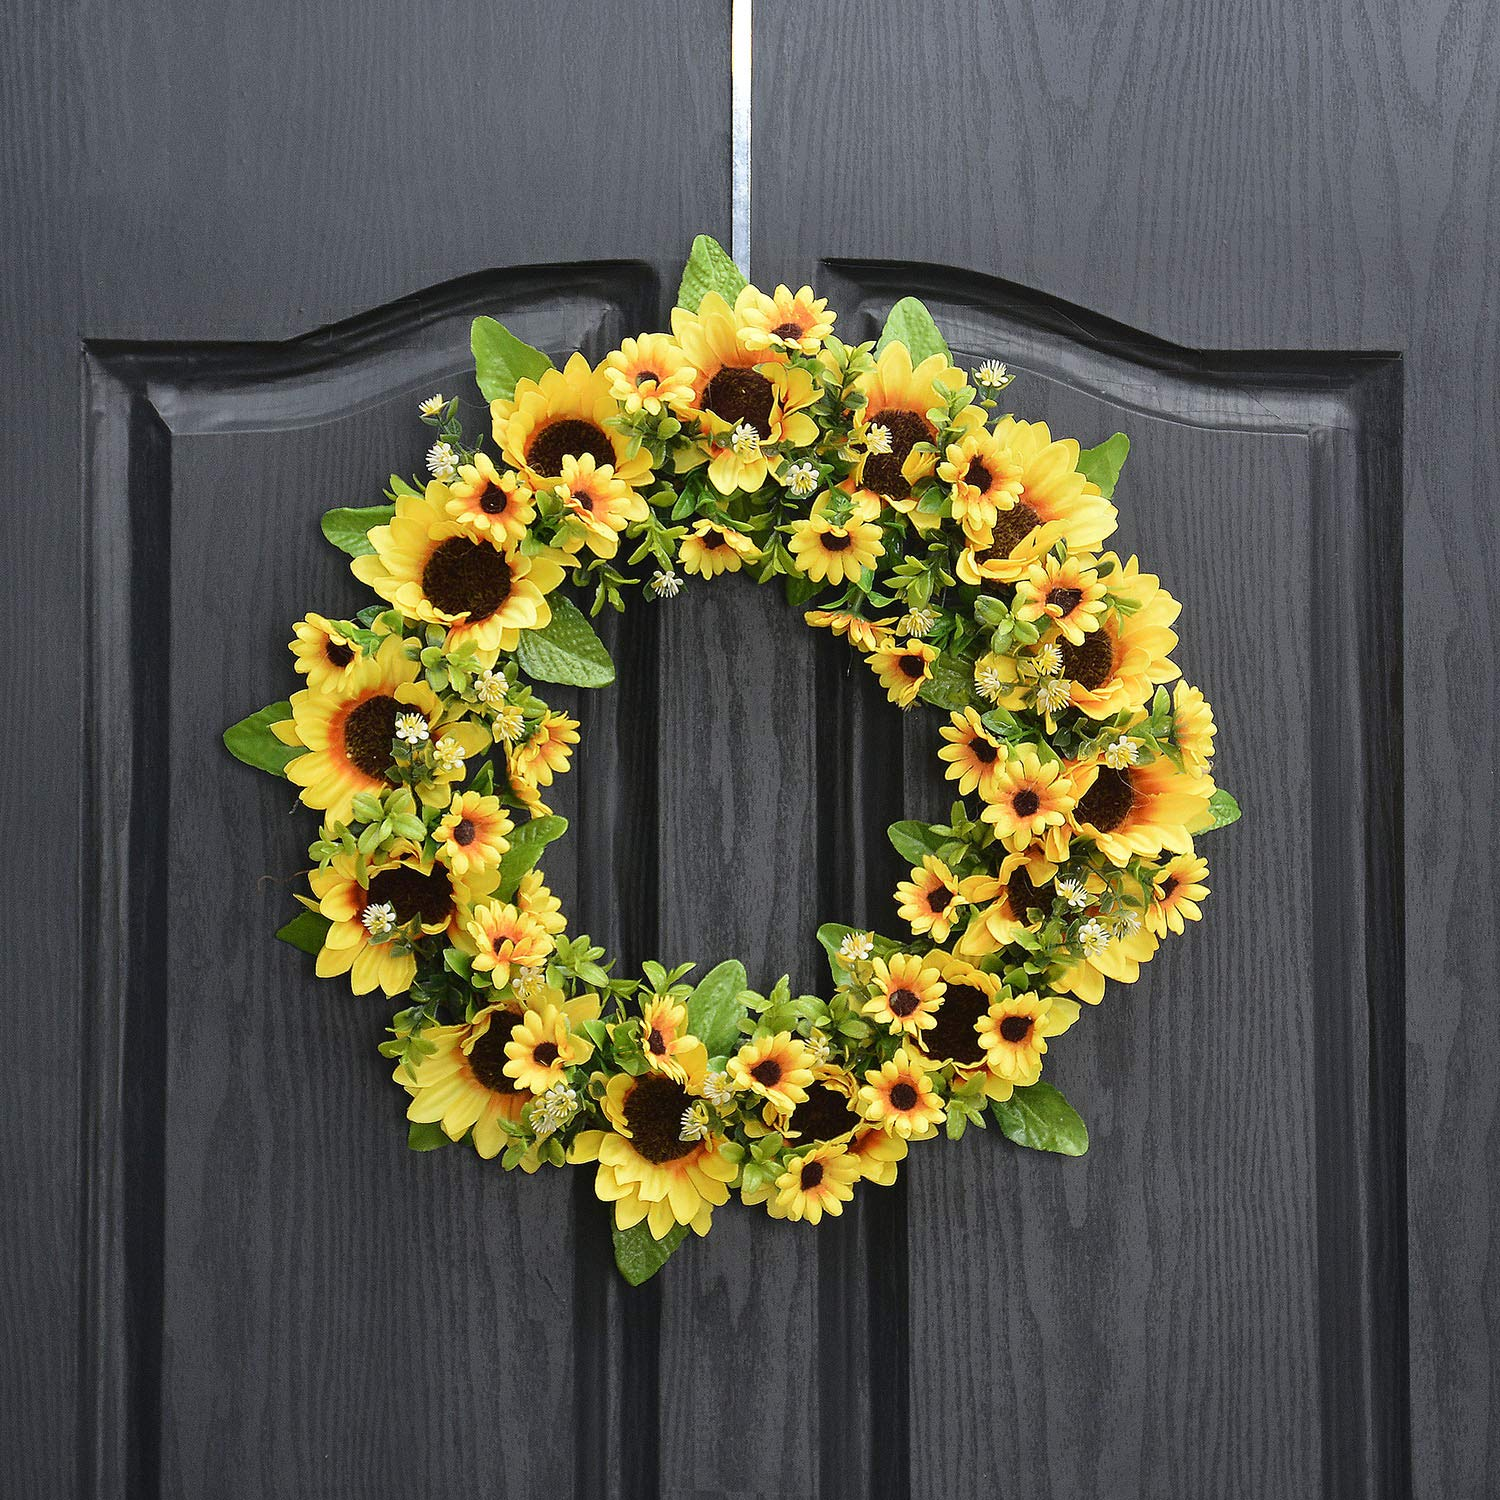 QUNWREATH Handmade Floral 14 inch Sunflowers Series Wreath,Fall Wreath,Wreath for Front Door,Rustic Wreath,Farmhouse Wreath,Grapevine Wreath,Light up Wreath,Everyday Wreath,QUNW01